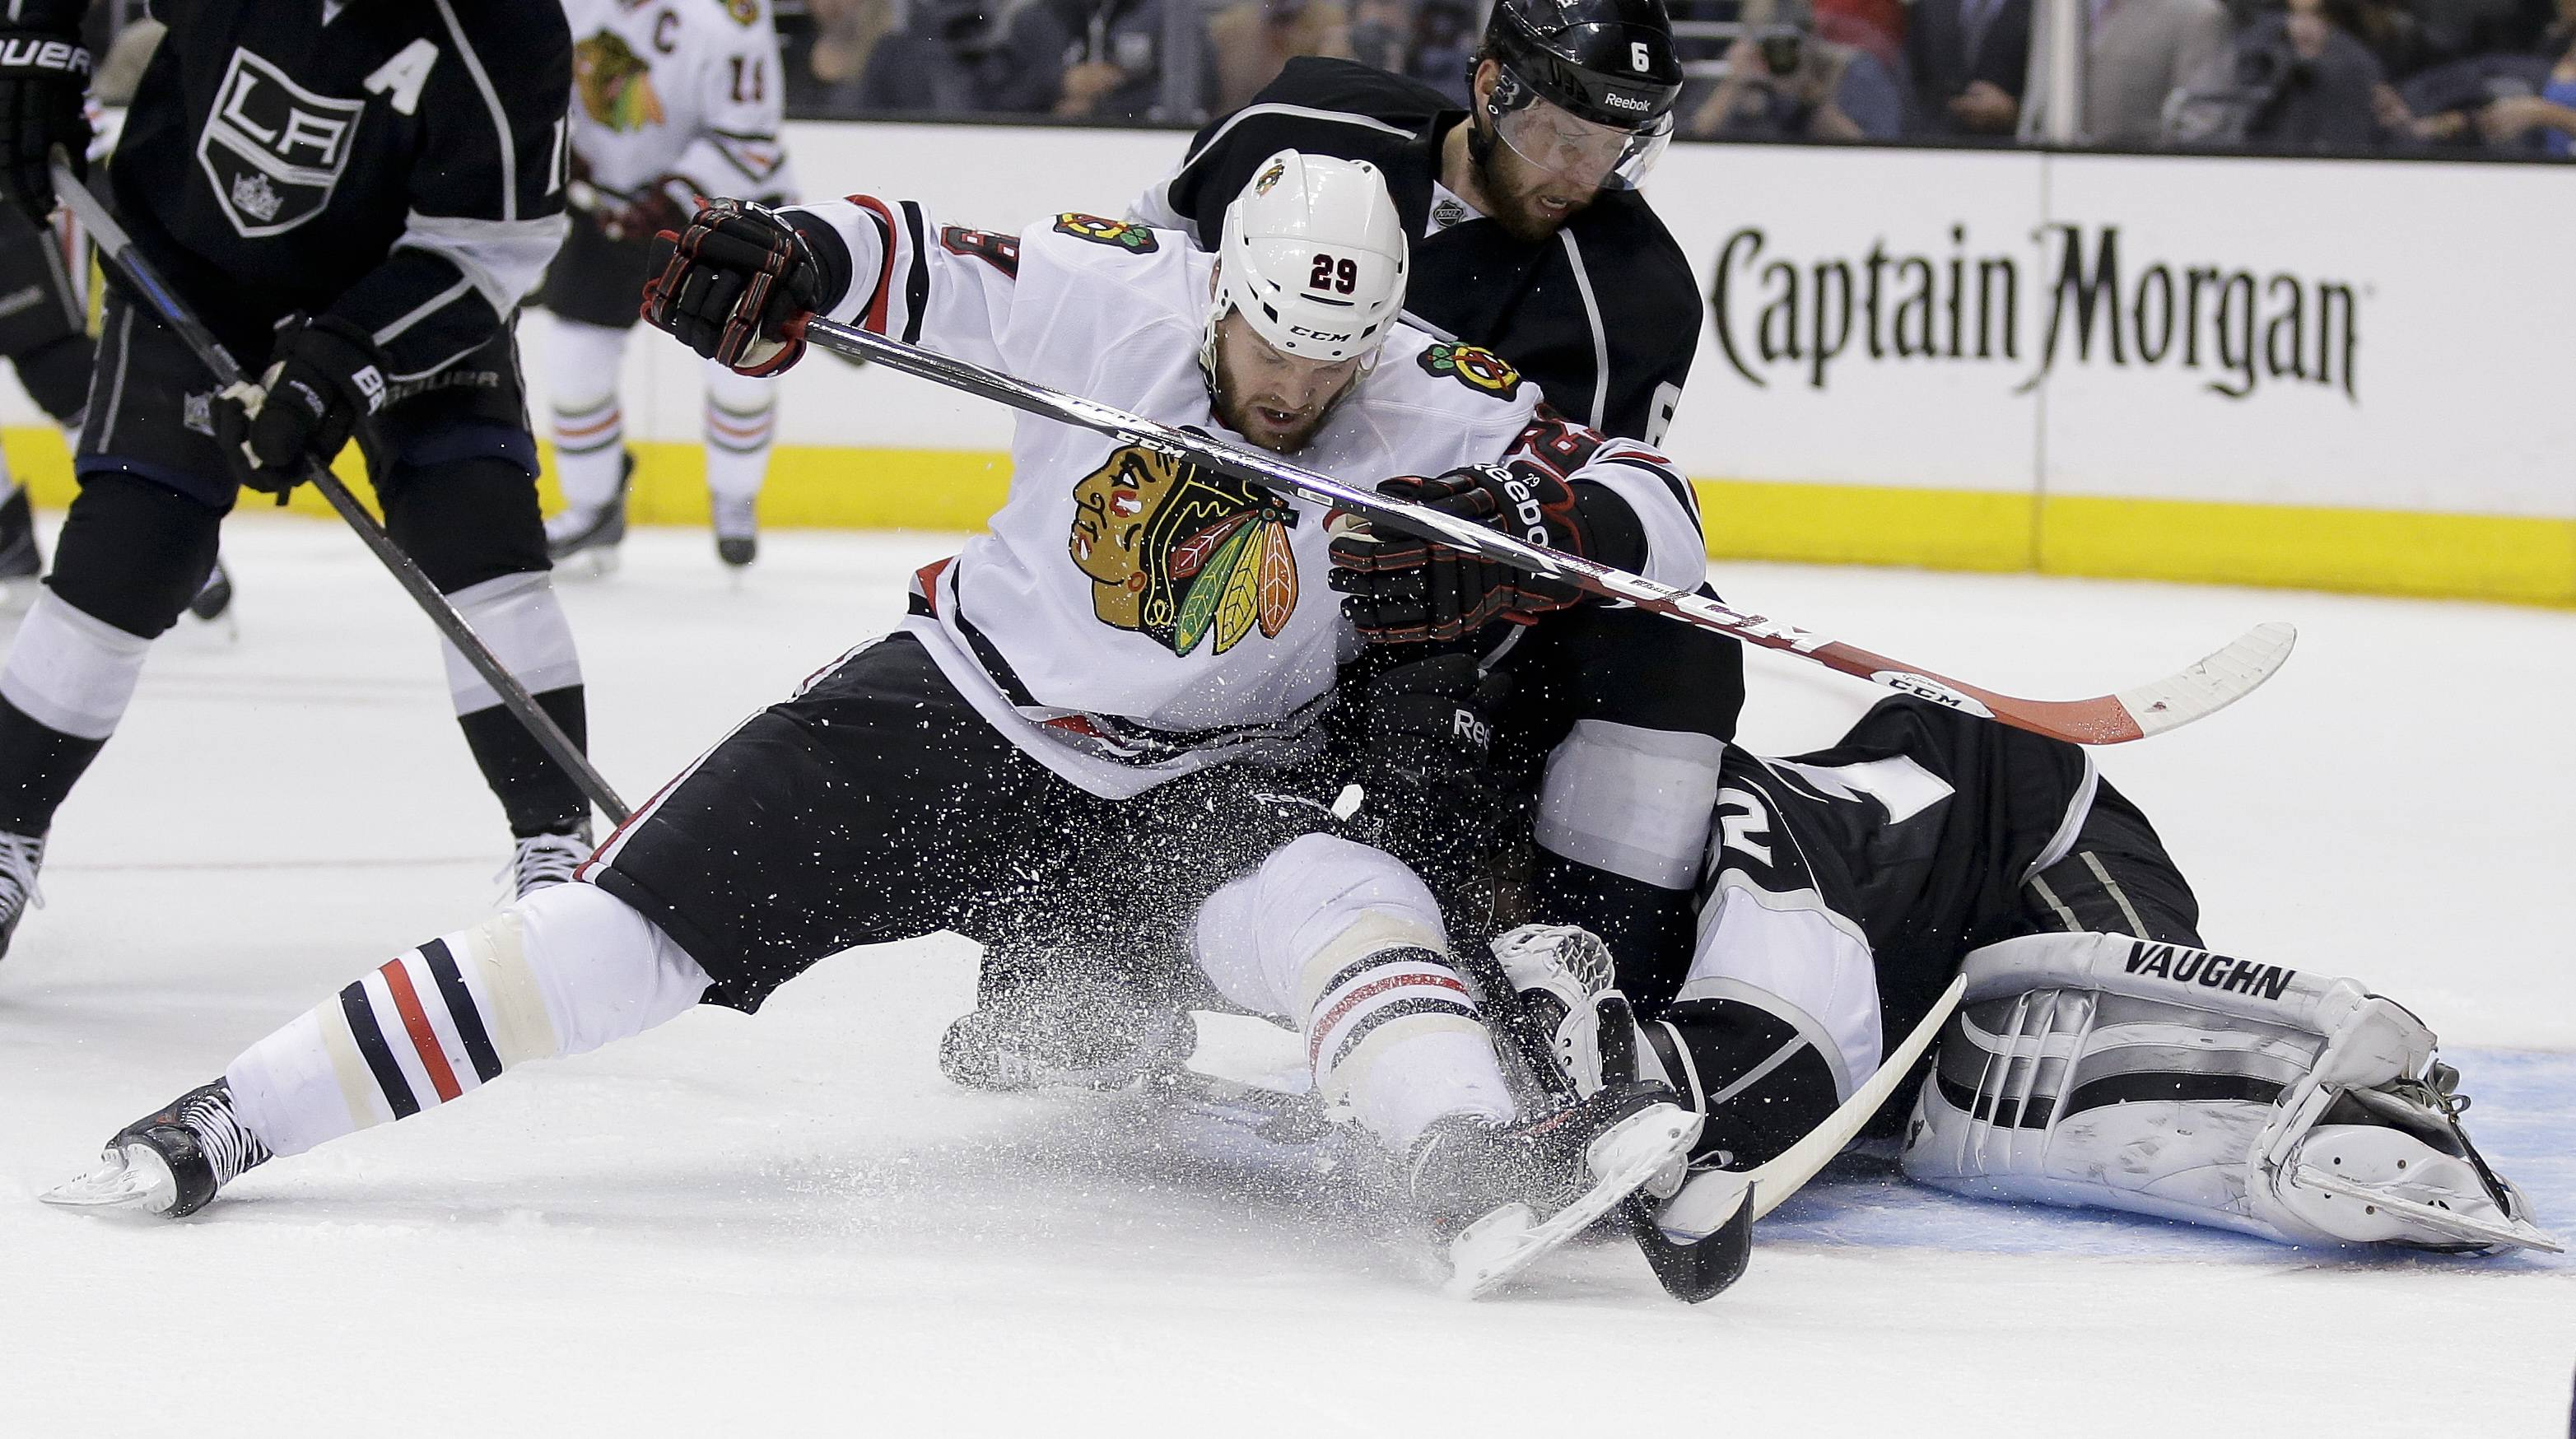 Los Angeles Kings goalie Jonathan Quick, right, blocks a shot by Chicago Blackhawks left wing Bryan Bickell as Kings' Jake Muzzin helps defend during first period.